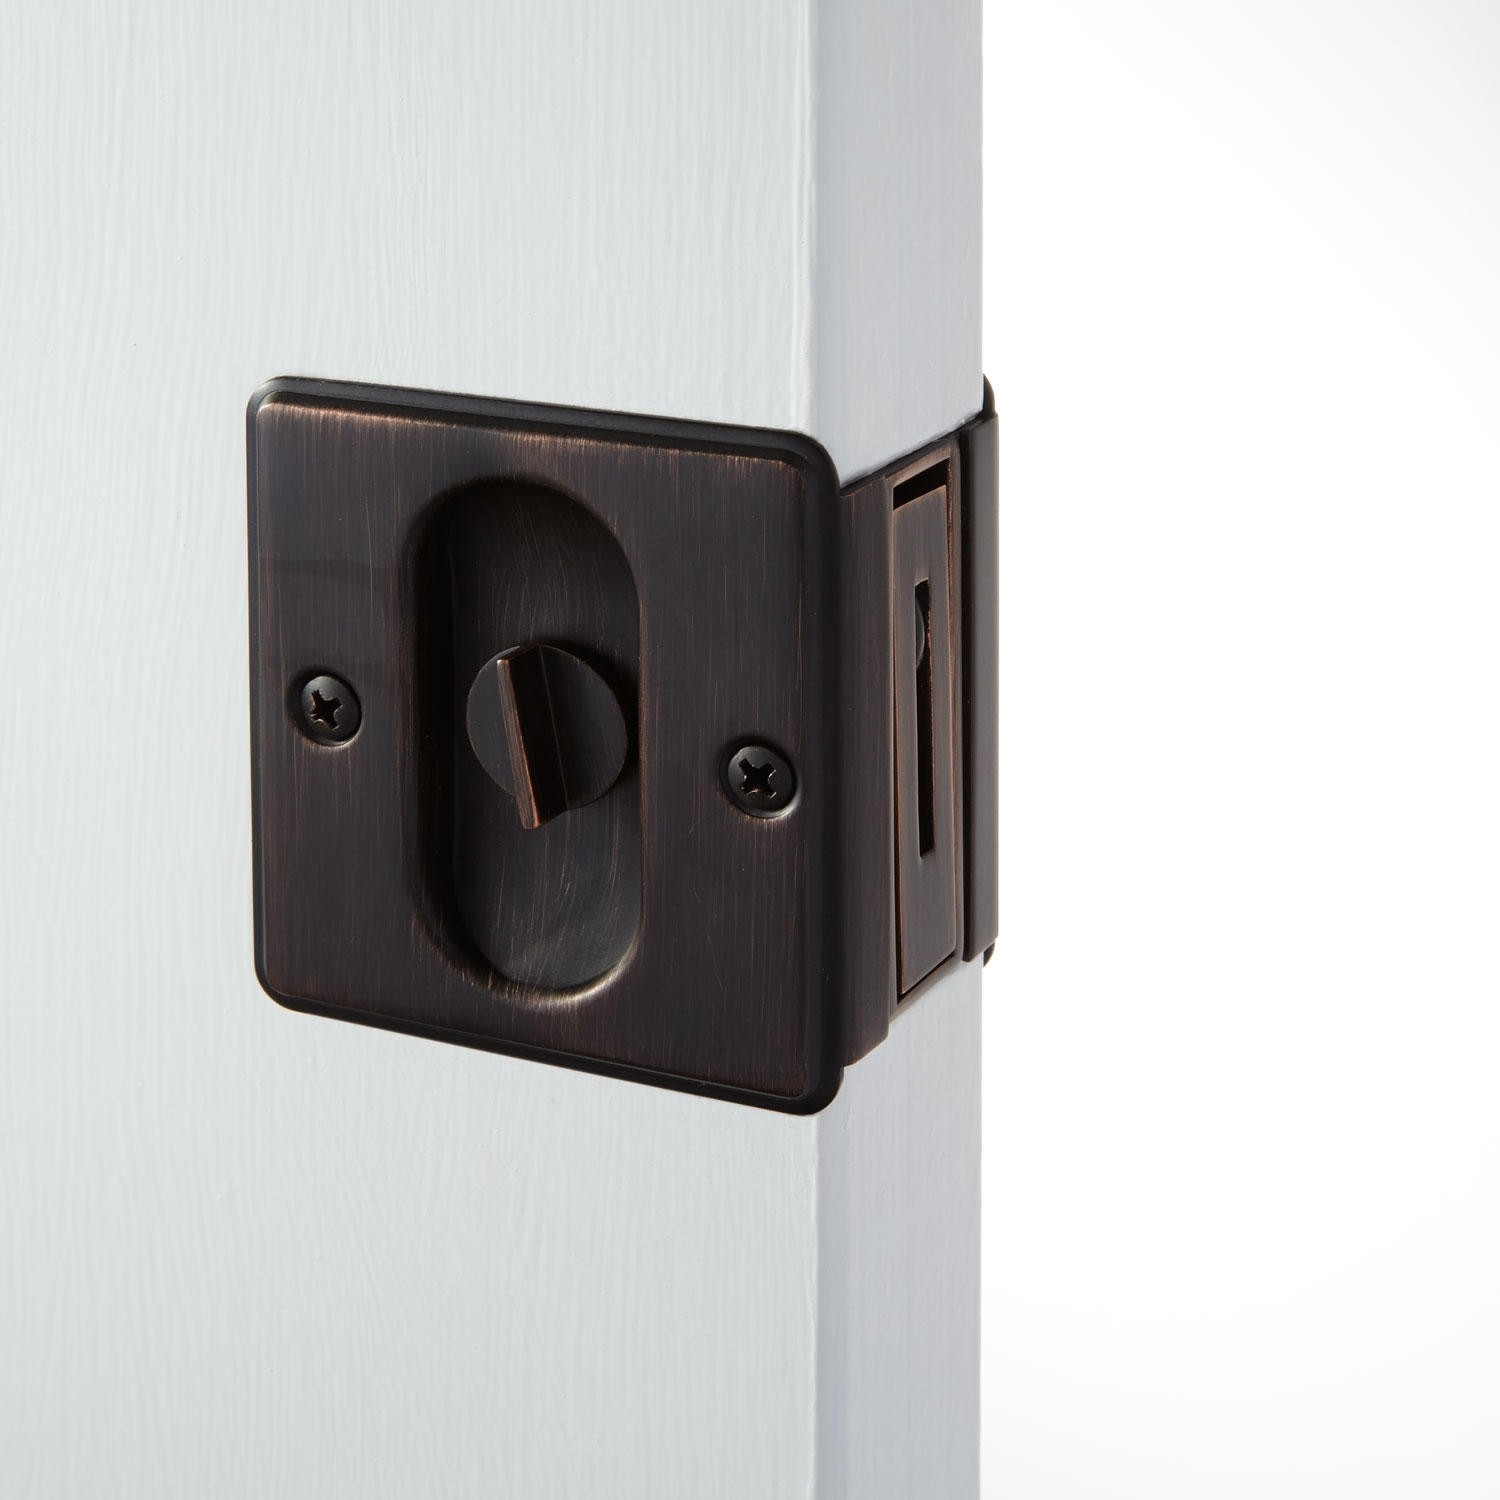 Stanley National Hardware Oil Rubbed Bronze Pocket Door Latch impressive pocket doorsre image design door pulls modern stanley 1500 X 1500